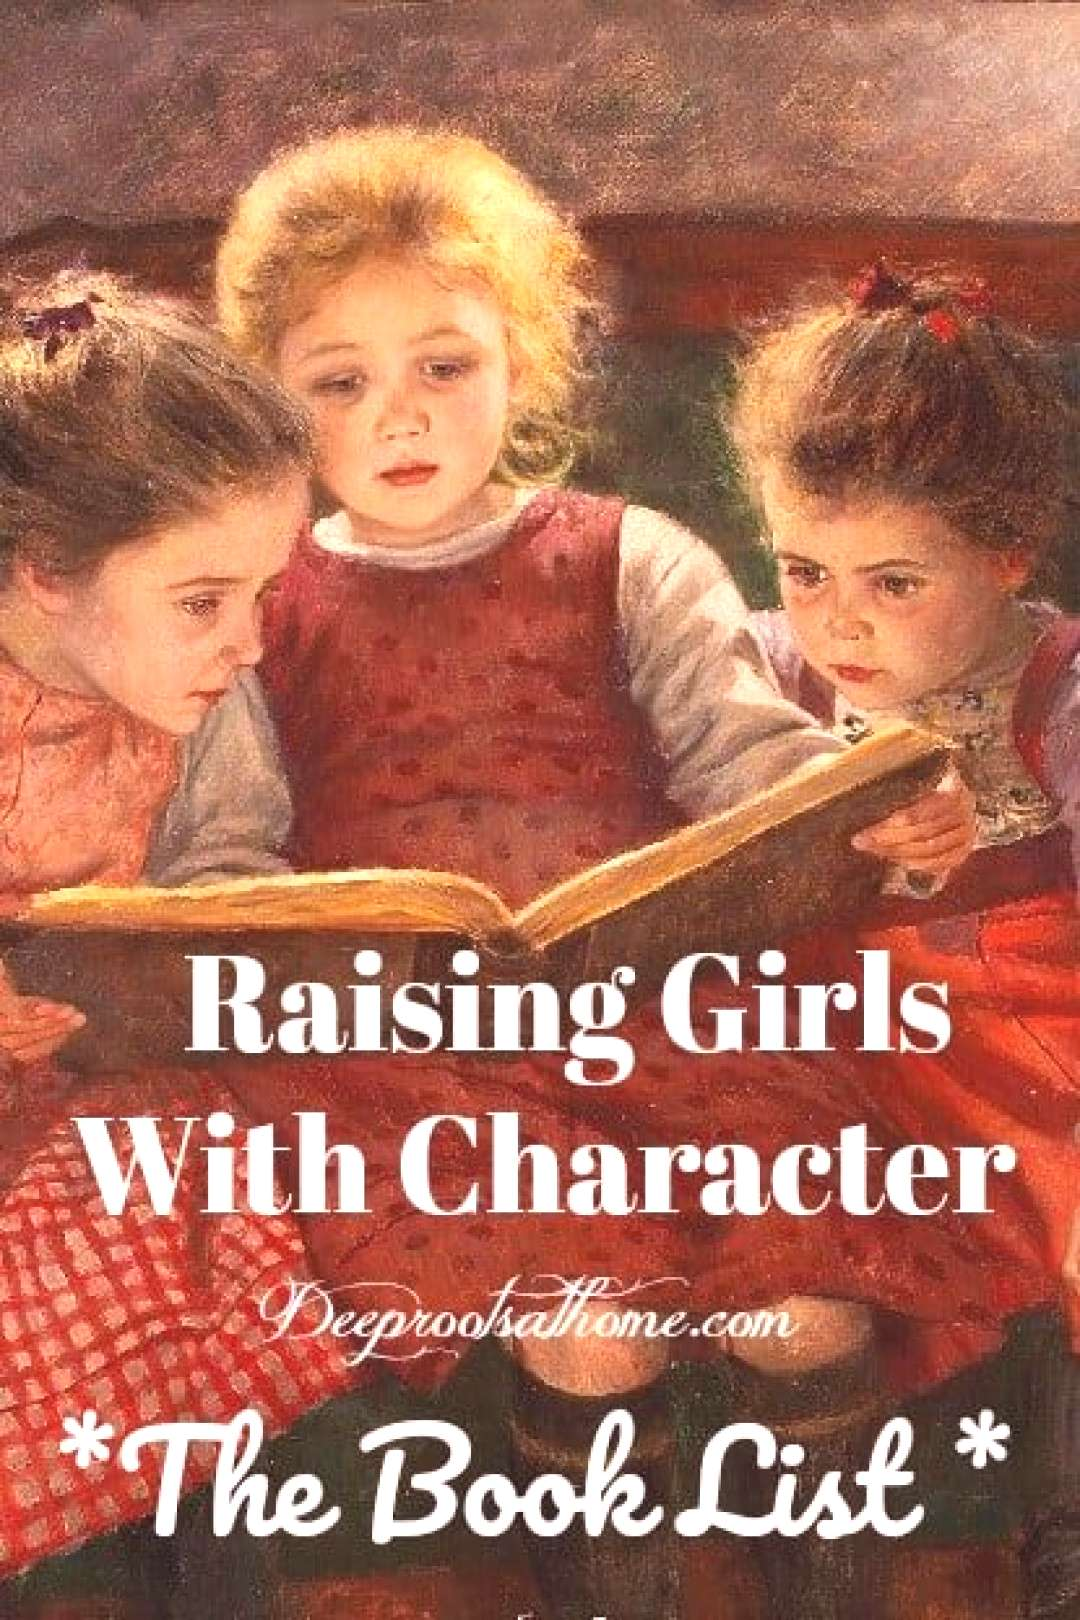 Raising Girls With Character-Building Books The Book List Character-Building Book Resources For Ra